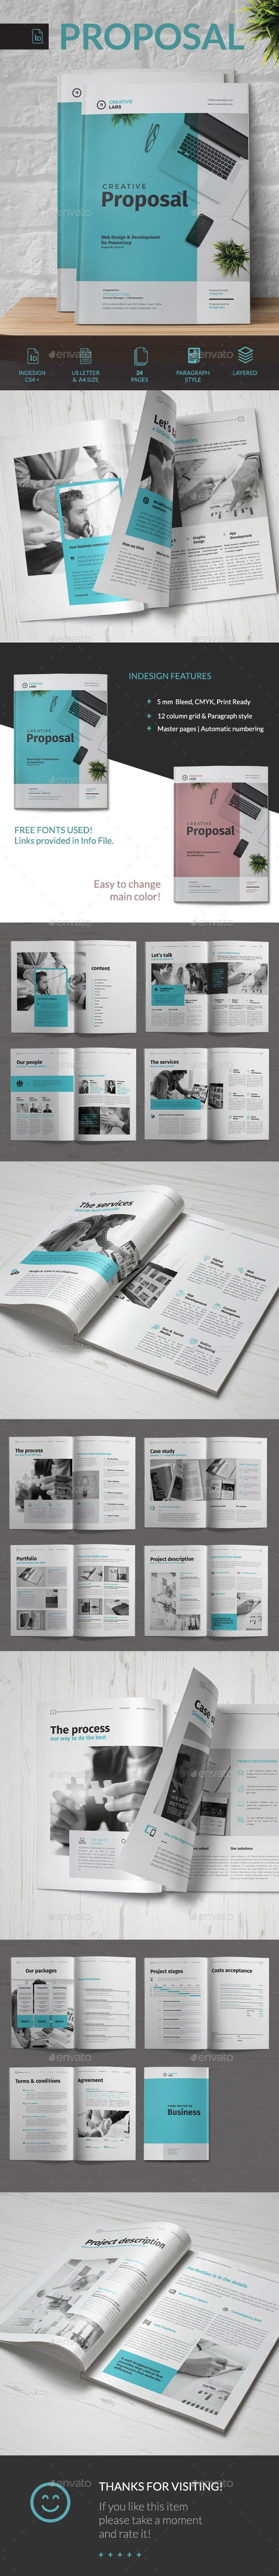 Creative Proposal Brochure Template InDesign INDD - 24 Pages - A4 & US Letter Format With Bleed